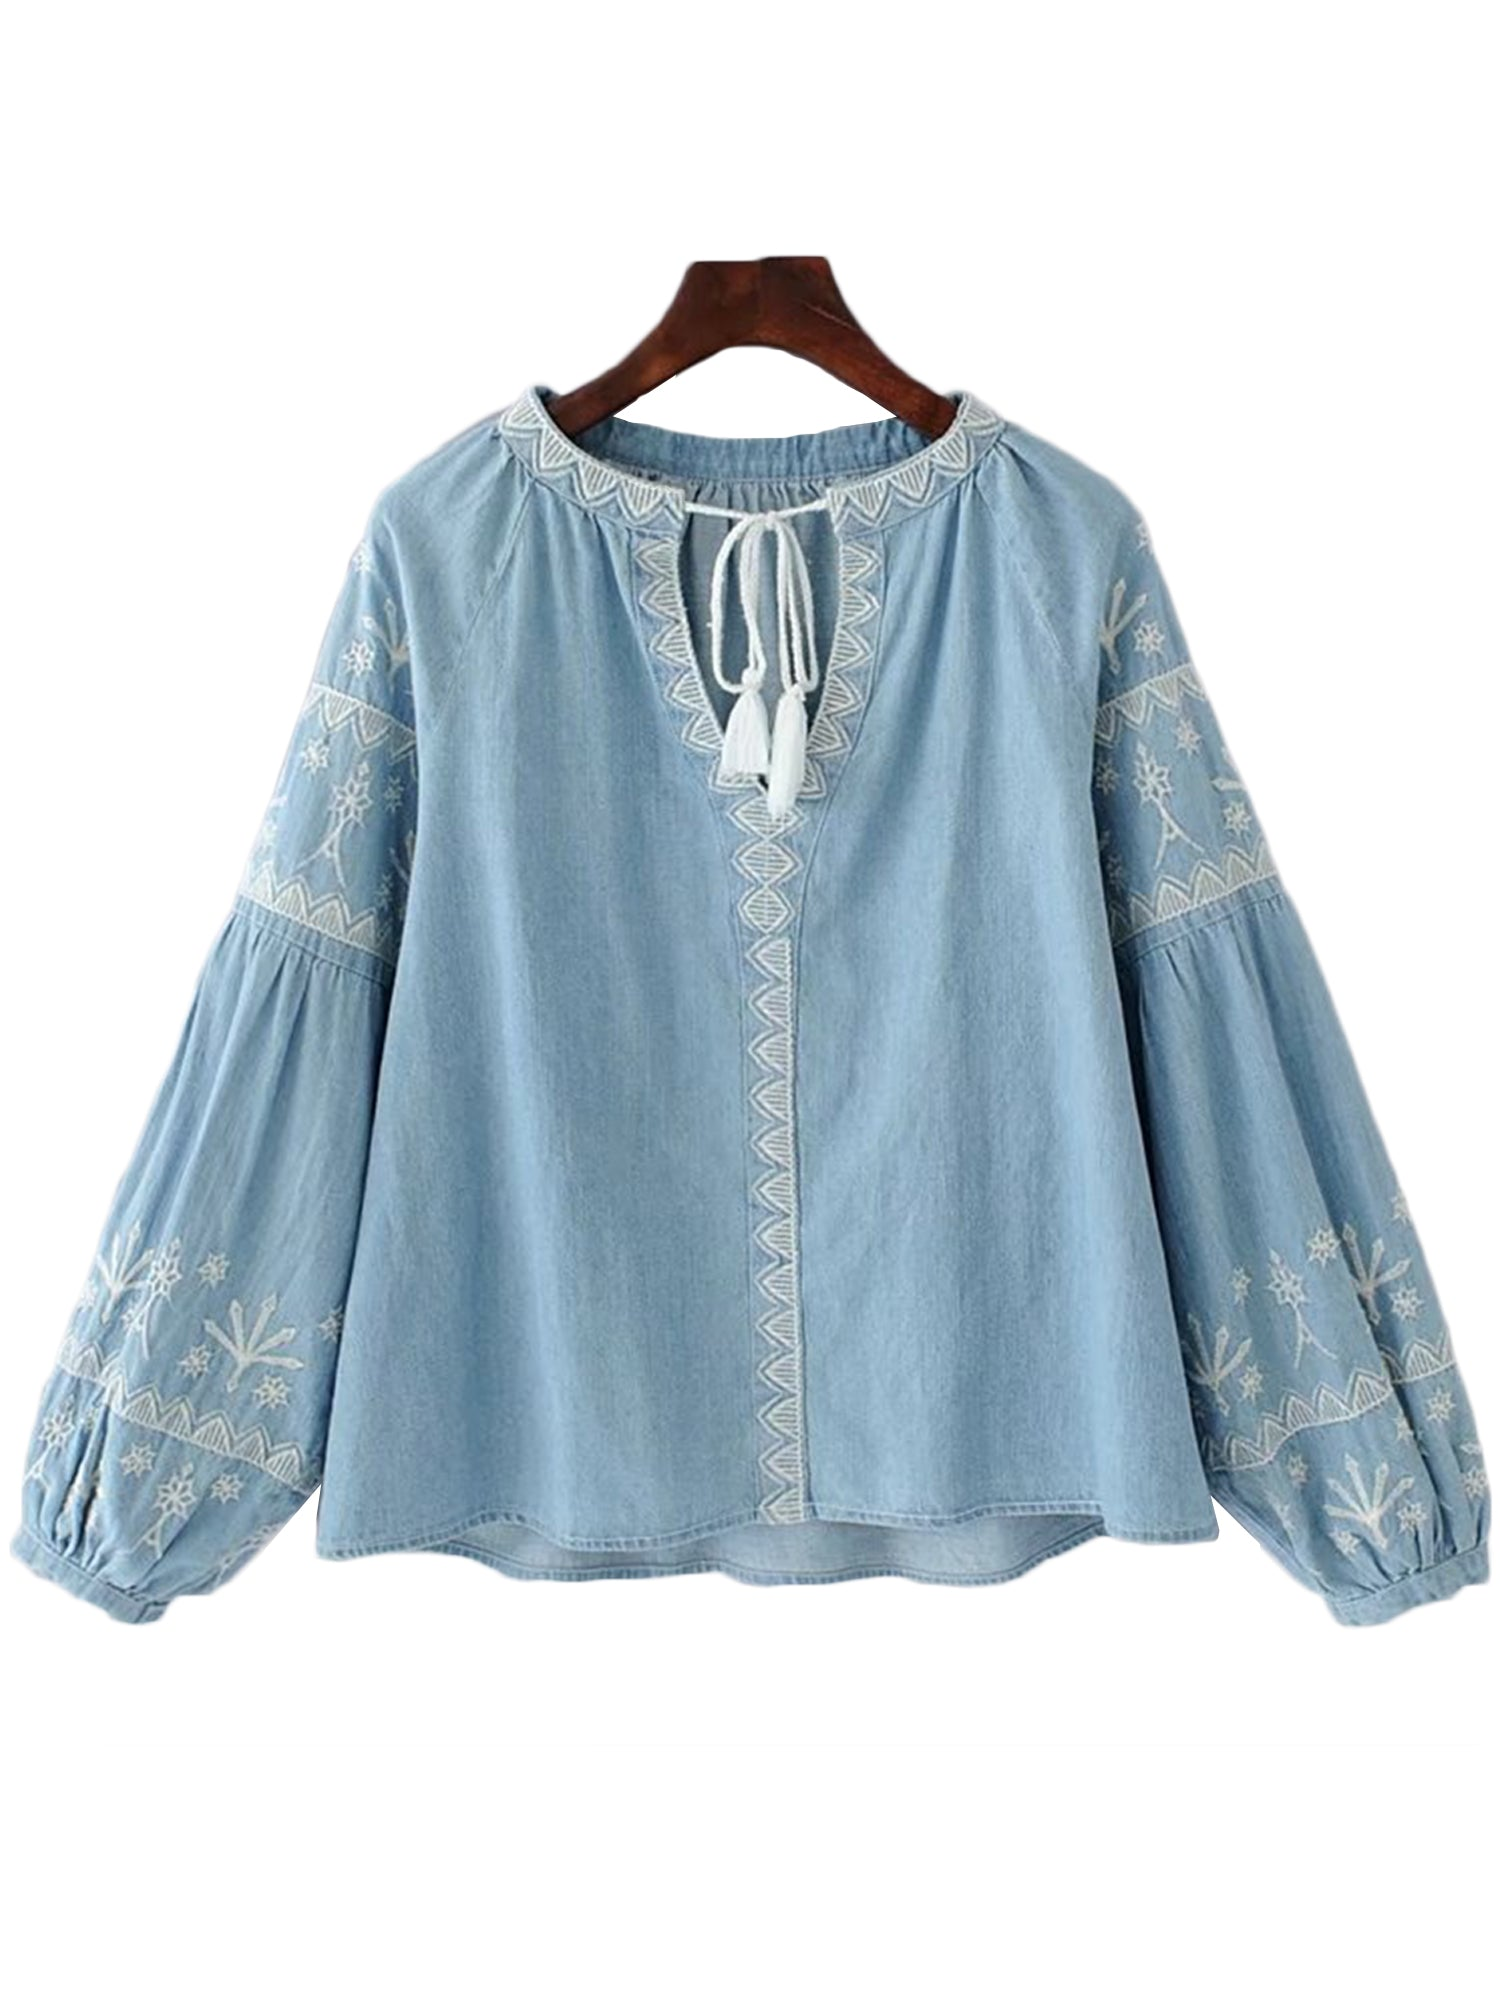 'Nita' Tassels Embroidered Chambray Top